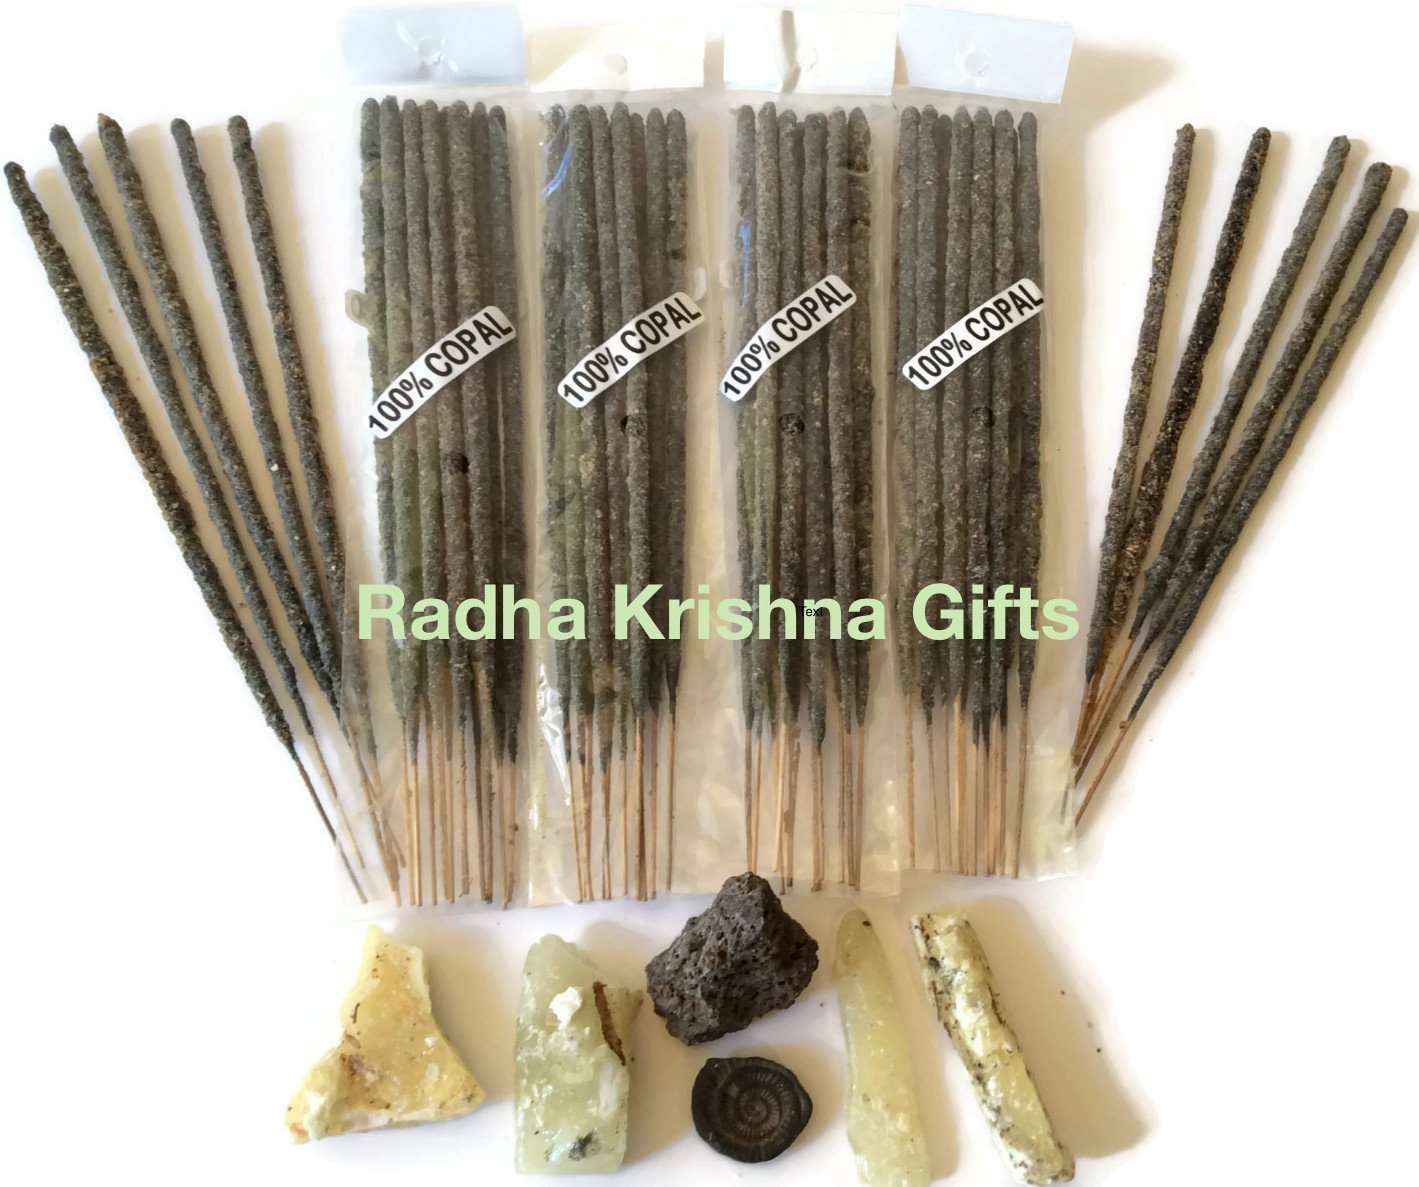 Mexican Copal Incense, 4 Bags with 10 Sticks Each. Handmade in Mexico with Gray Copal Resin. Radha Krishna Gifts.